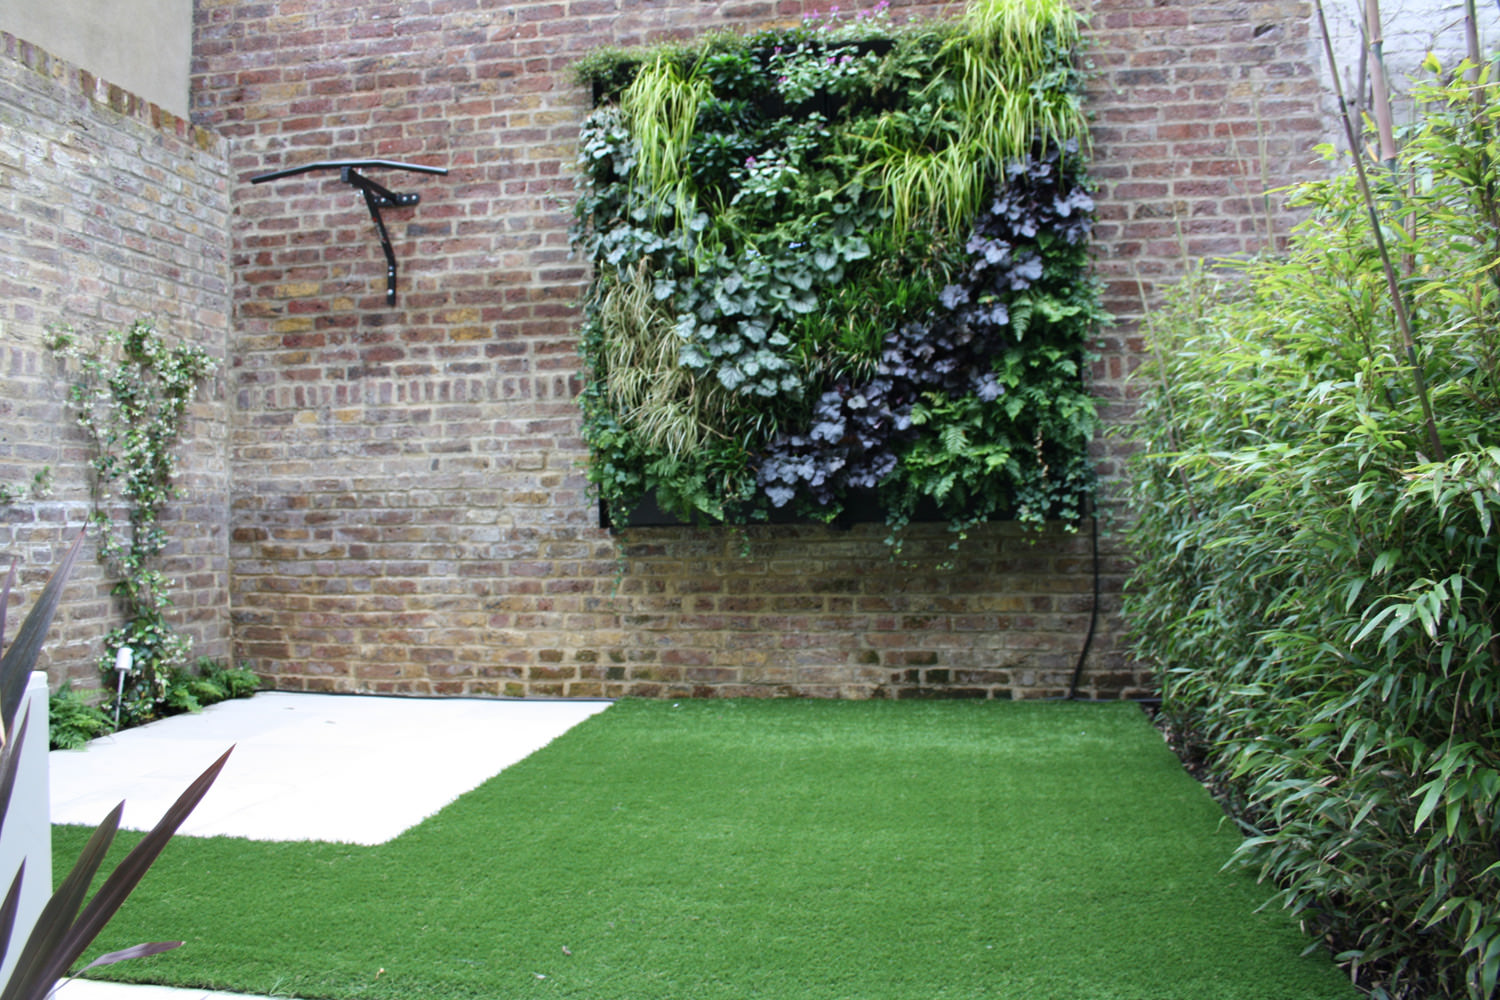 Top 10 london garden designs garden club london for Top garden designers